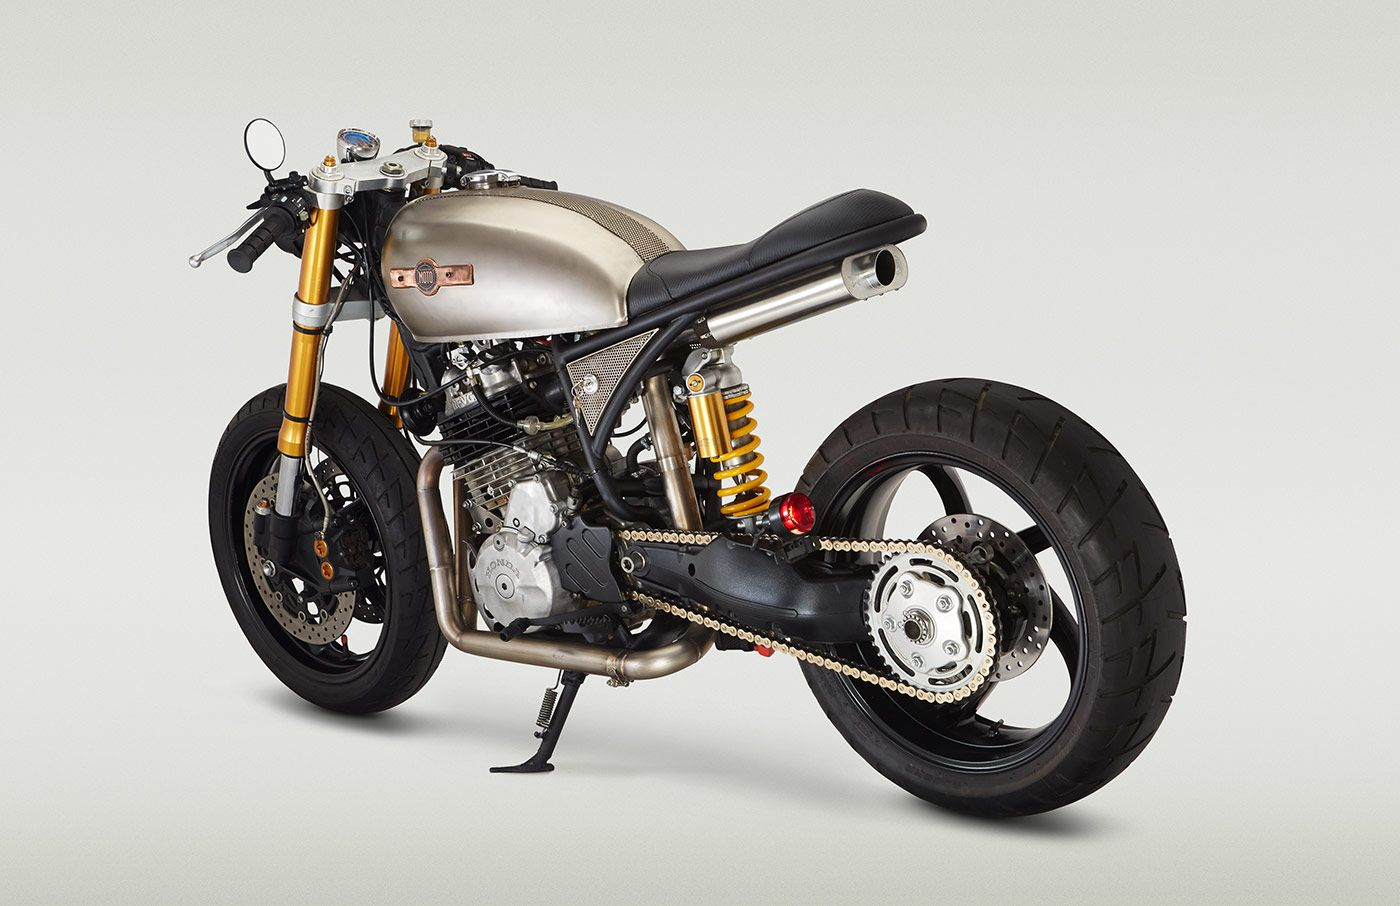 Classified moto kt600 the garage cafe - Honda Xl600r Kt675nz By Classified Moto